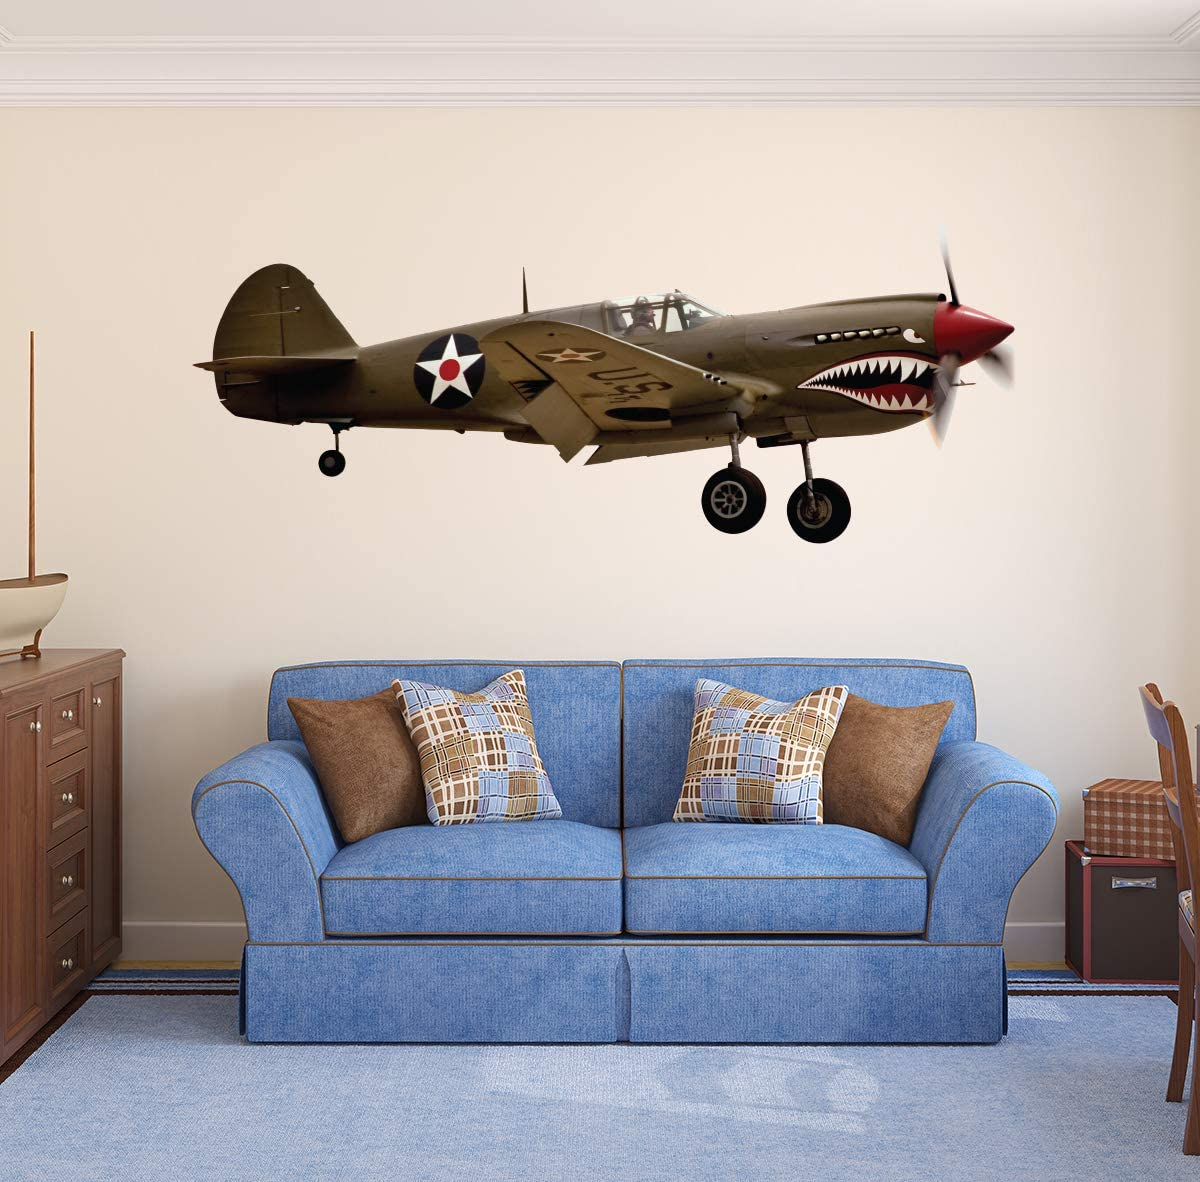 """Aircraft Wall Decal WWII Military Airplane Wall Art World War Graphic Kids Room Home Bedroom Wall Decor Removable Vinyl Wall Stickers ND64 (36""""W x 14""""H inches)"""